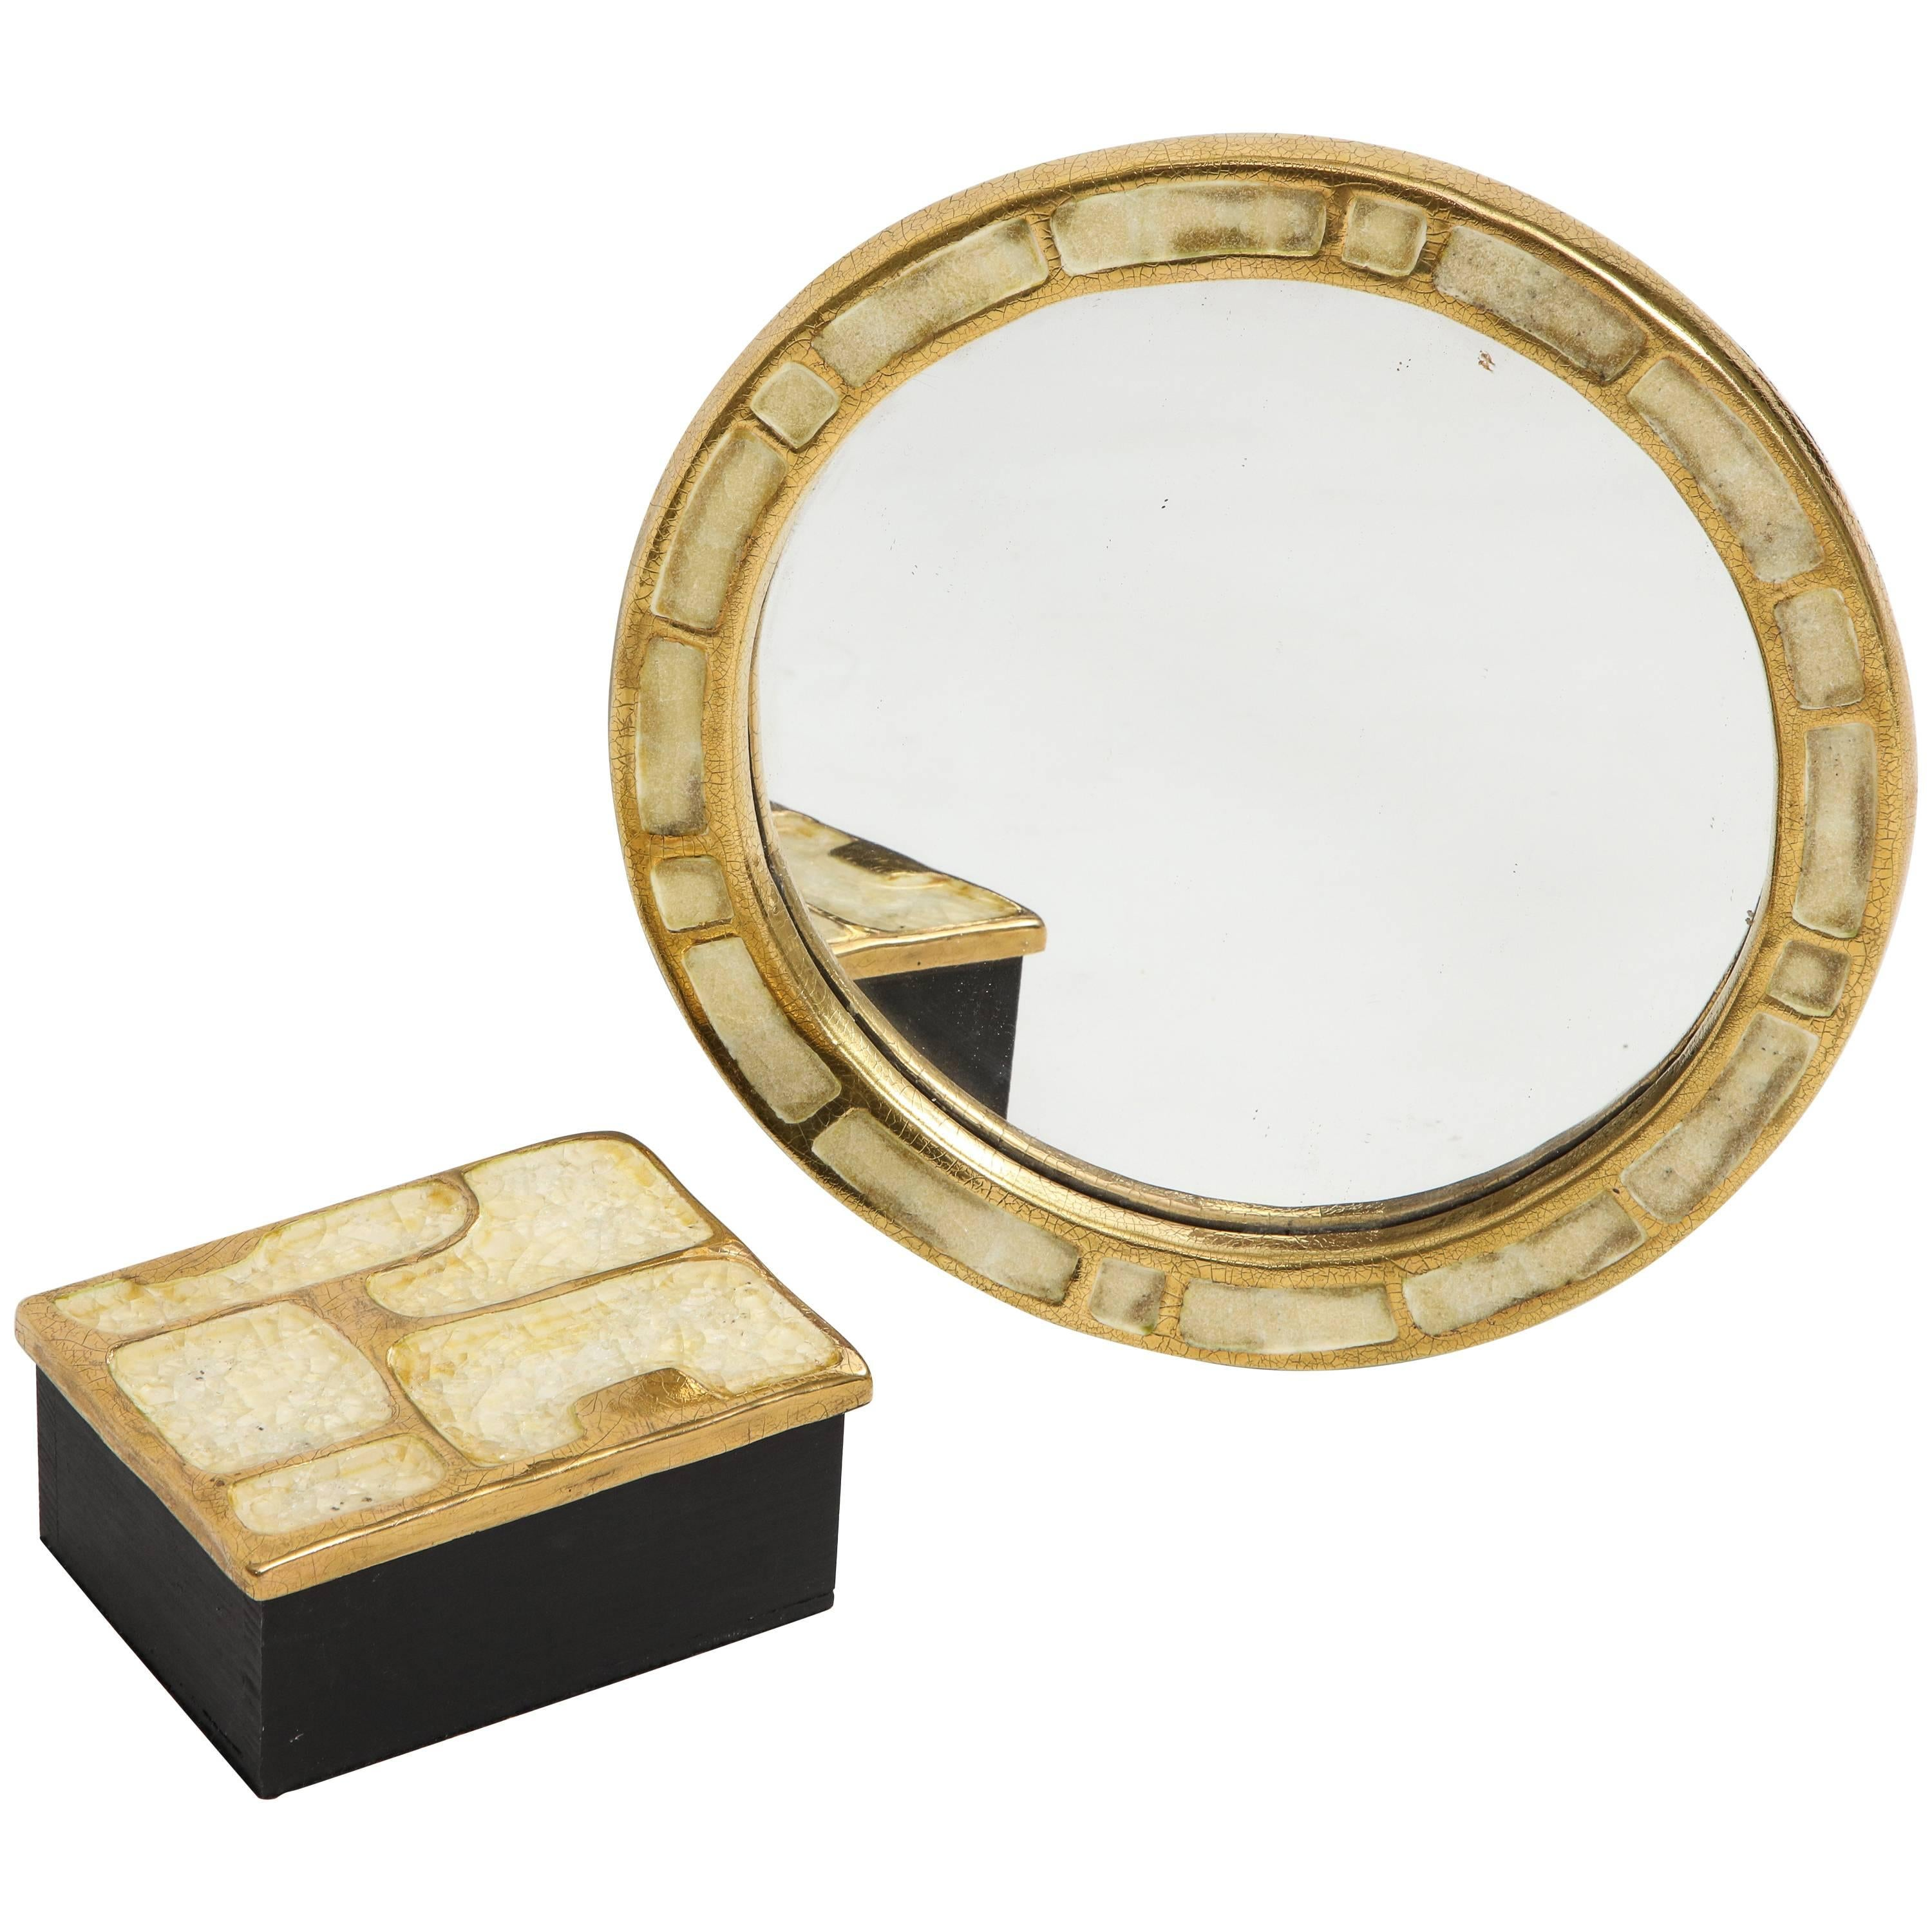 Mithé Espelt Ceramic Gold Enamel Mirror and Box, France, 1960s